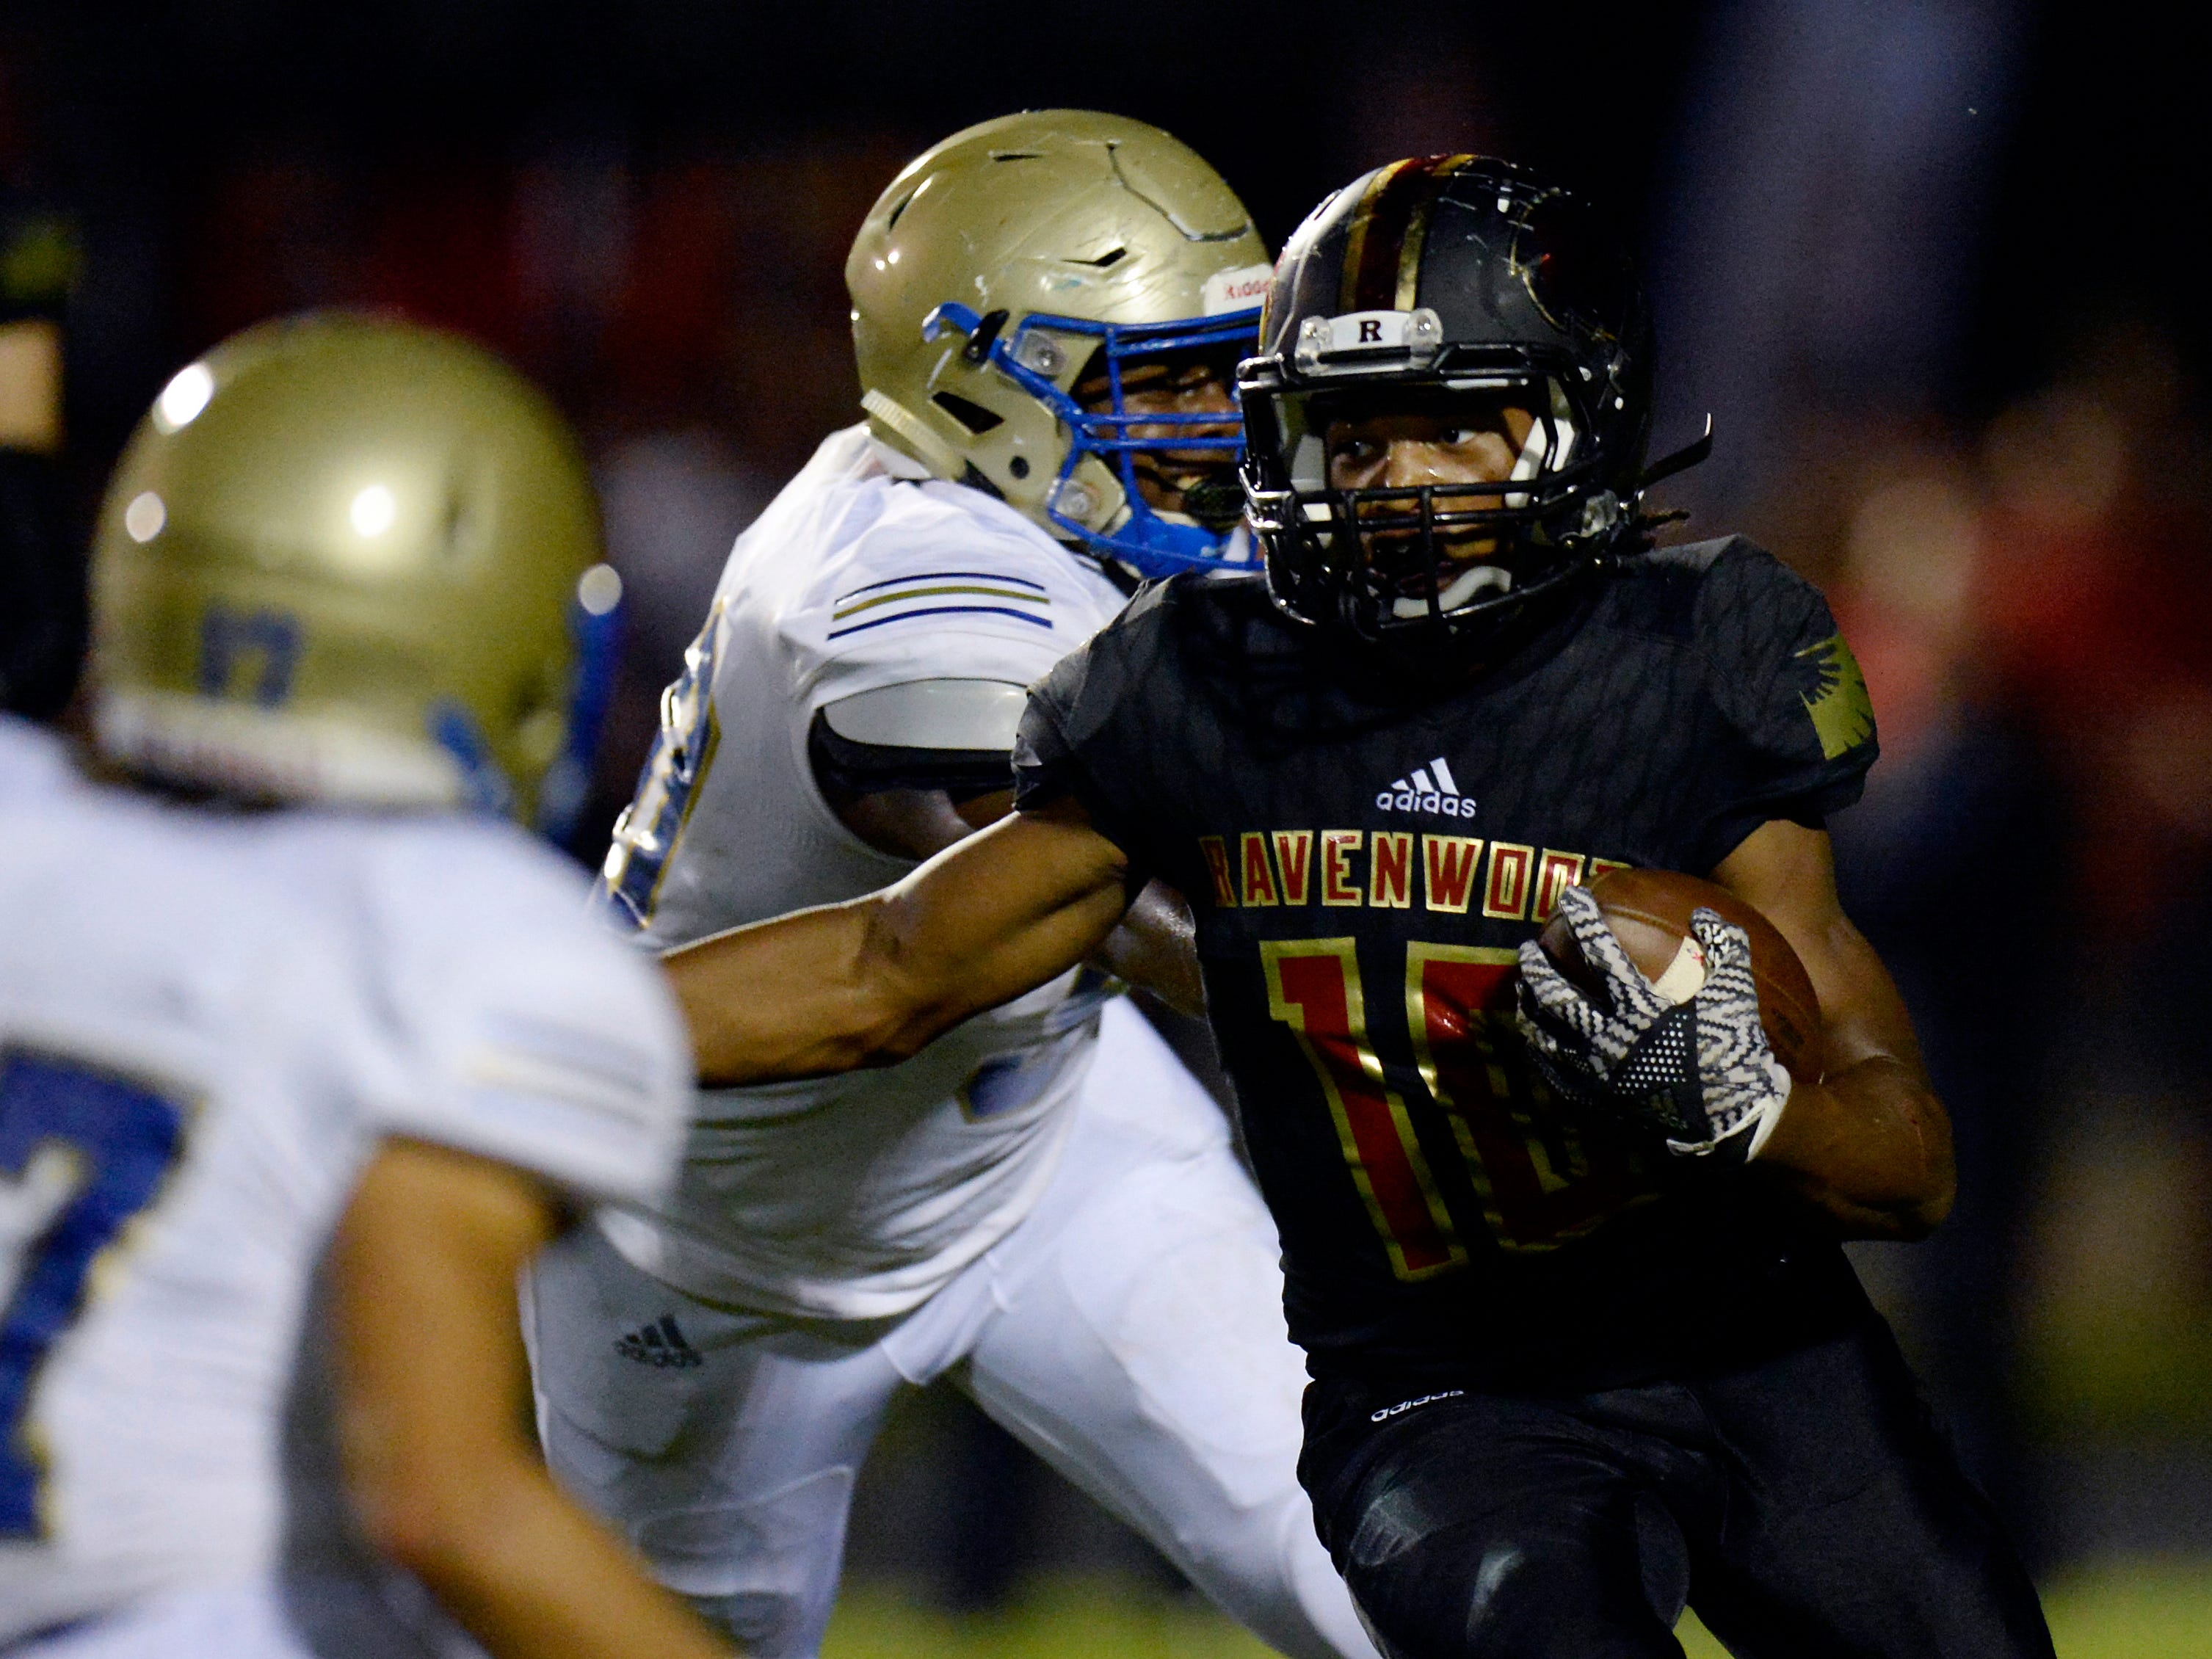 Ravenwood running back Tony Rice (10) runs the ball against Brentwood during the first half of an high school football game Friday, September 14, 2018, in Brentwood, Tenn.